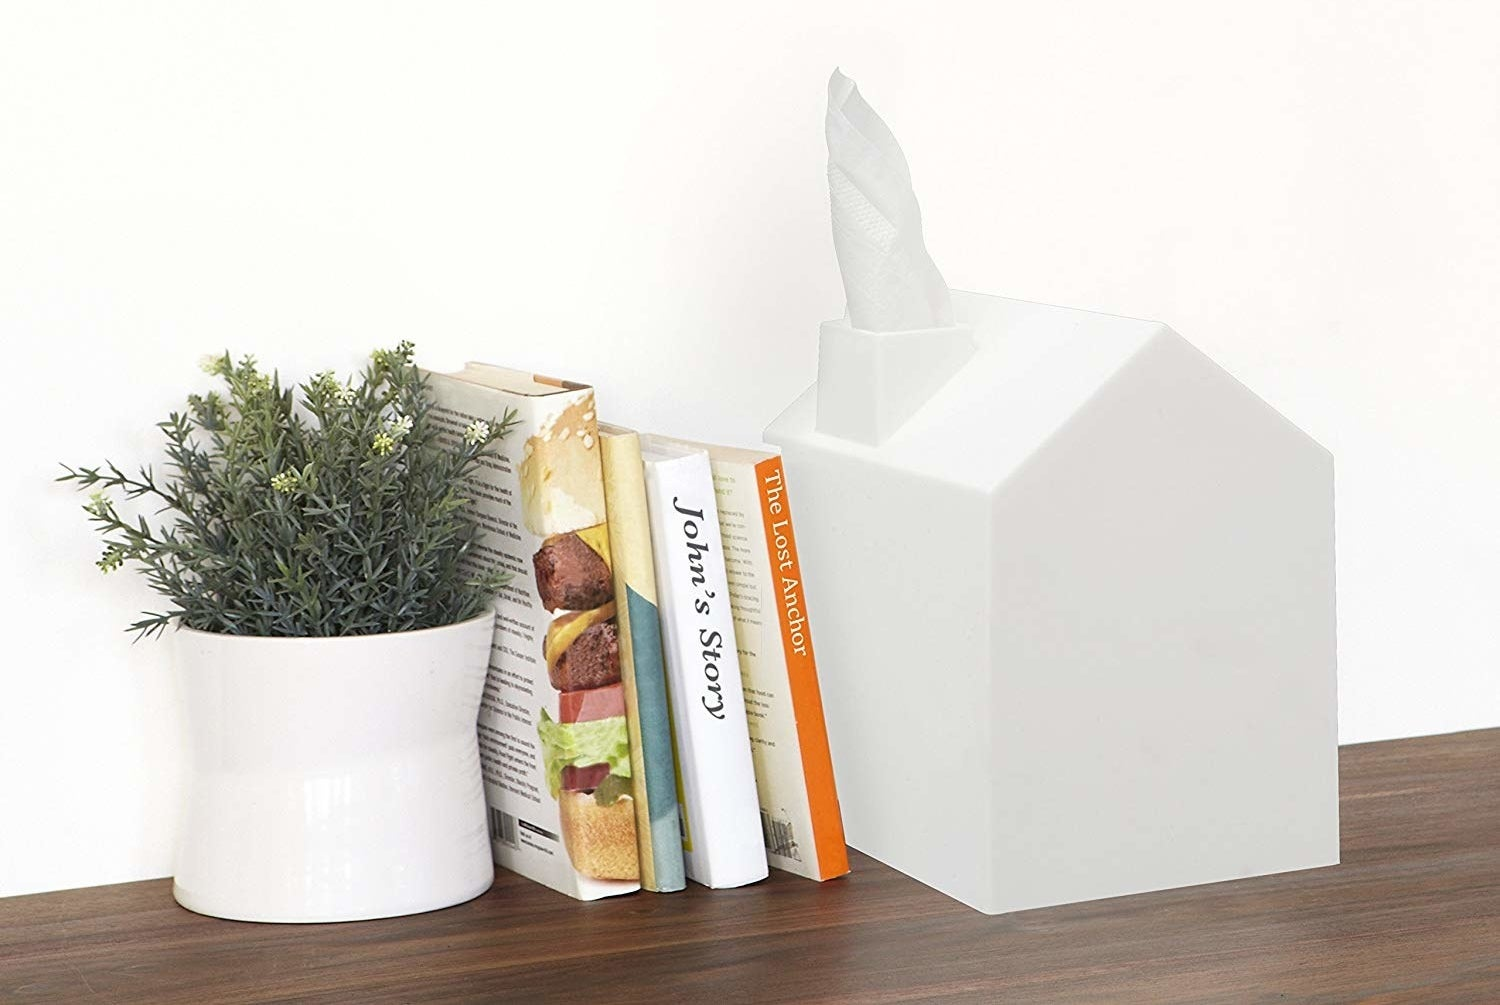 House shaped tissue box with tissues coming out of chimney